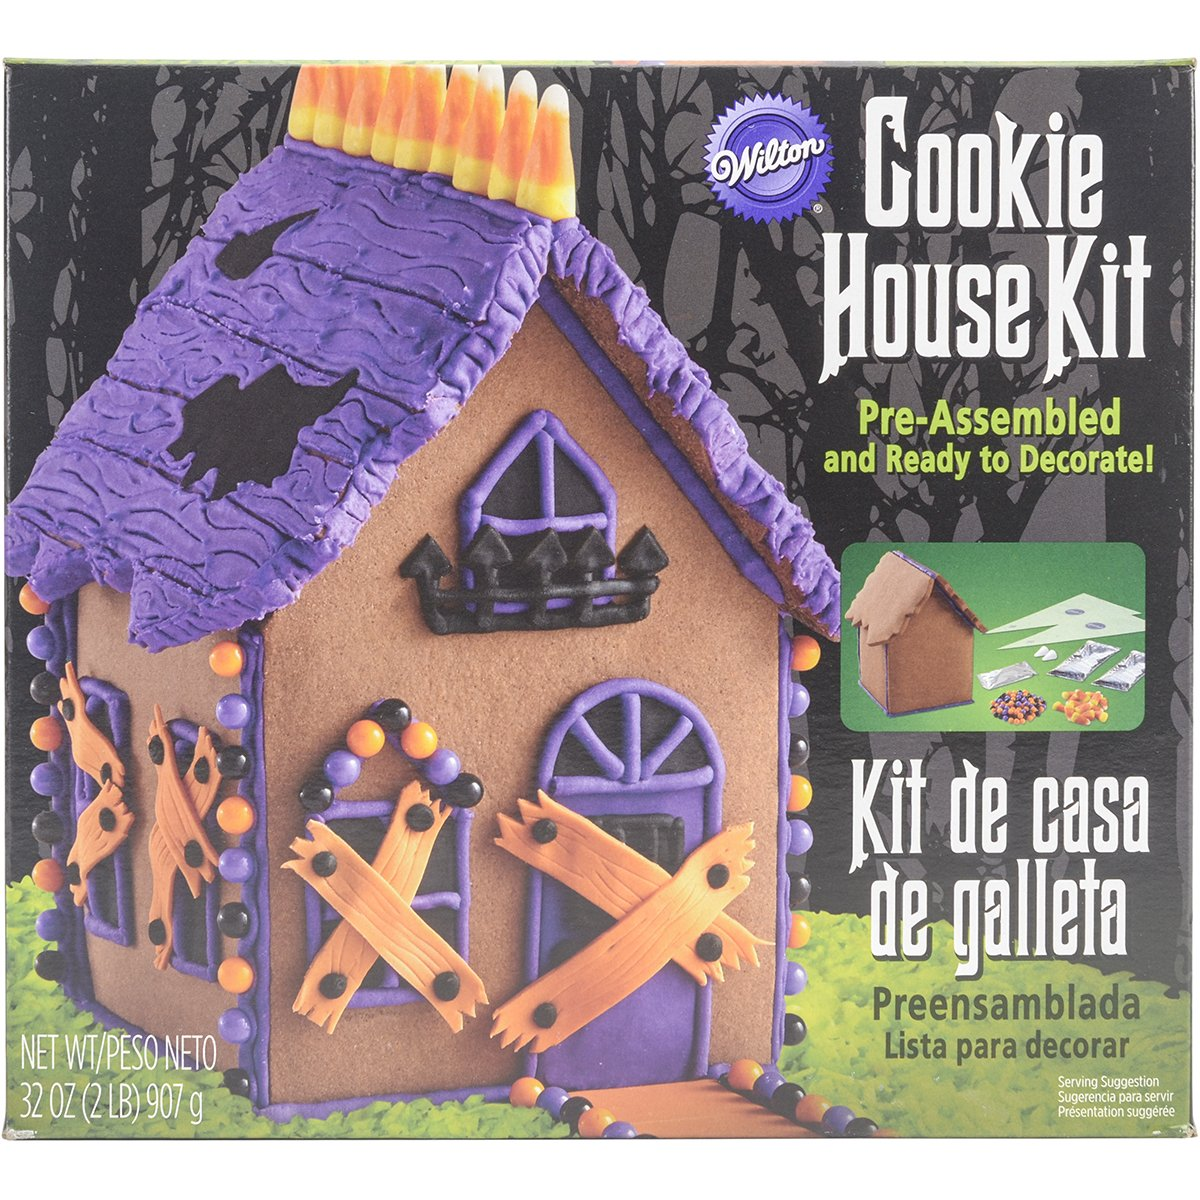 haunted gingerbread house kit halloween haunted house decorating kit includes pre assembled cookie house approximately 65 in wide x 325 in deep x 7